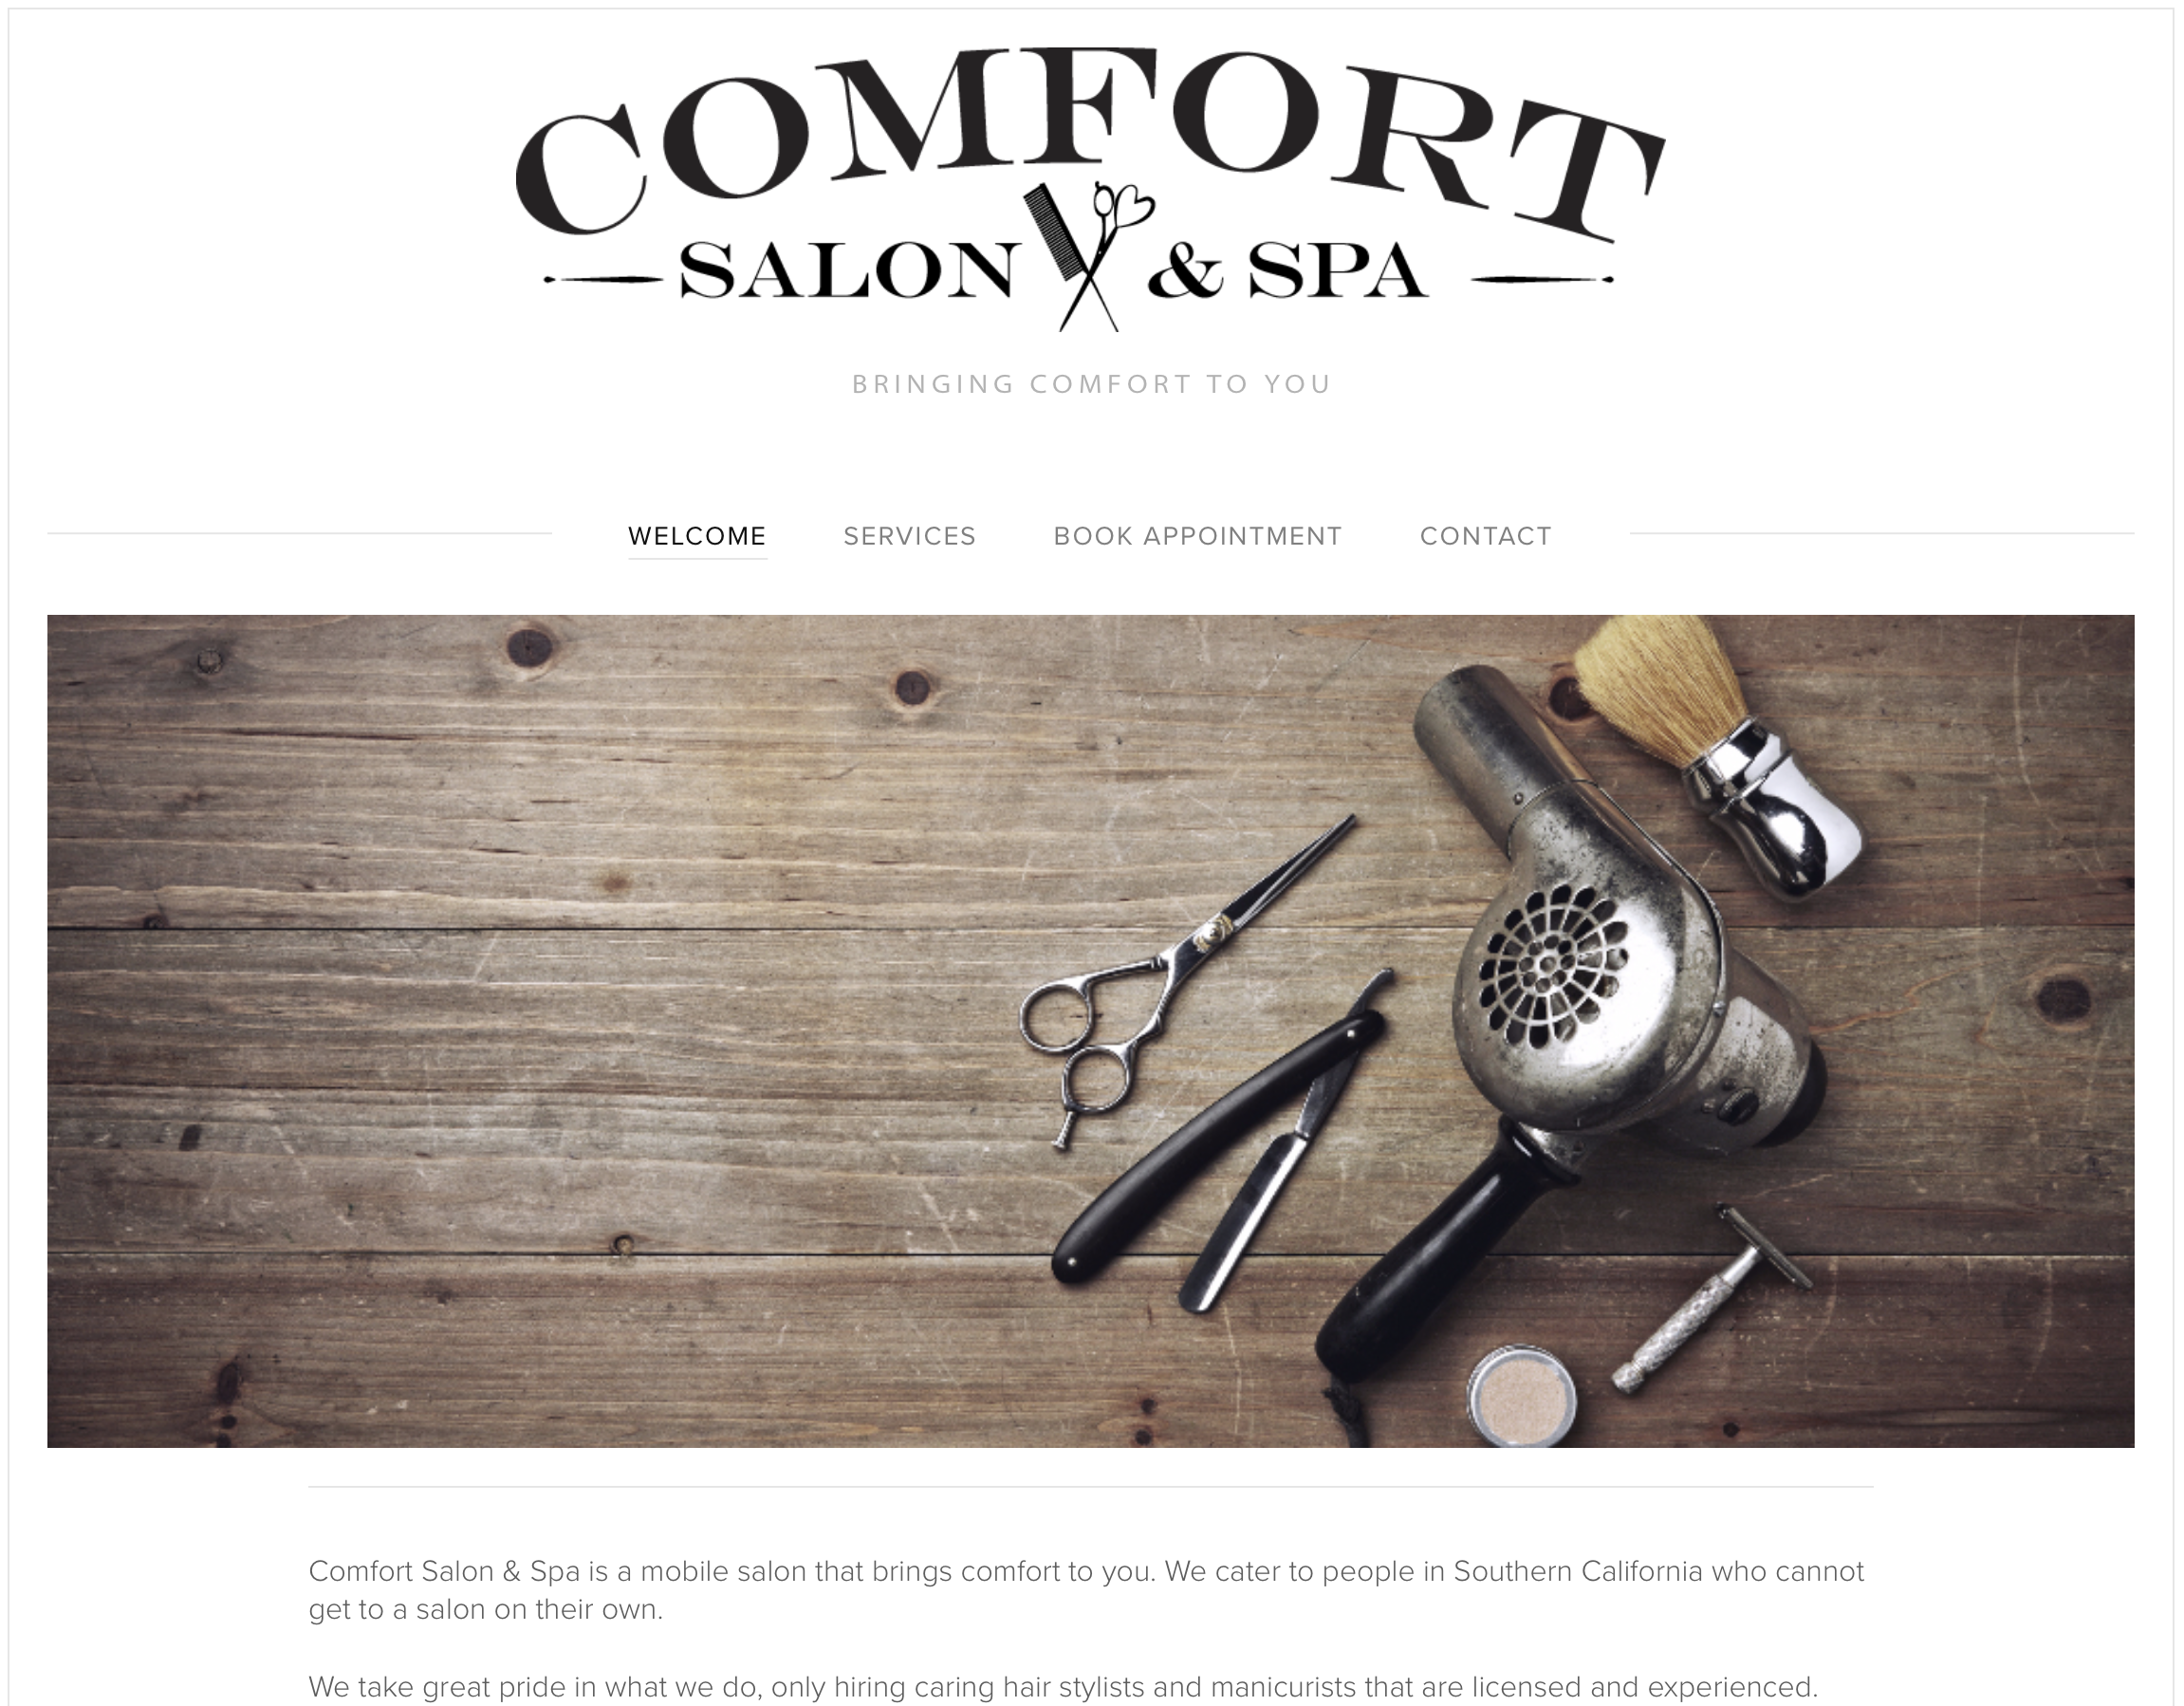 COMFORT SALON & SPA